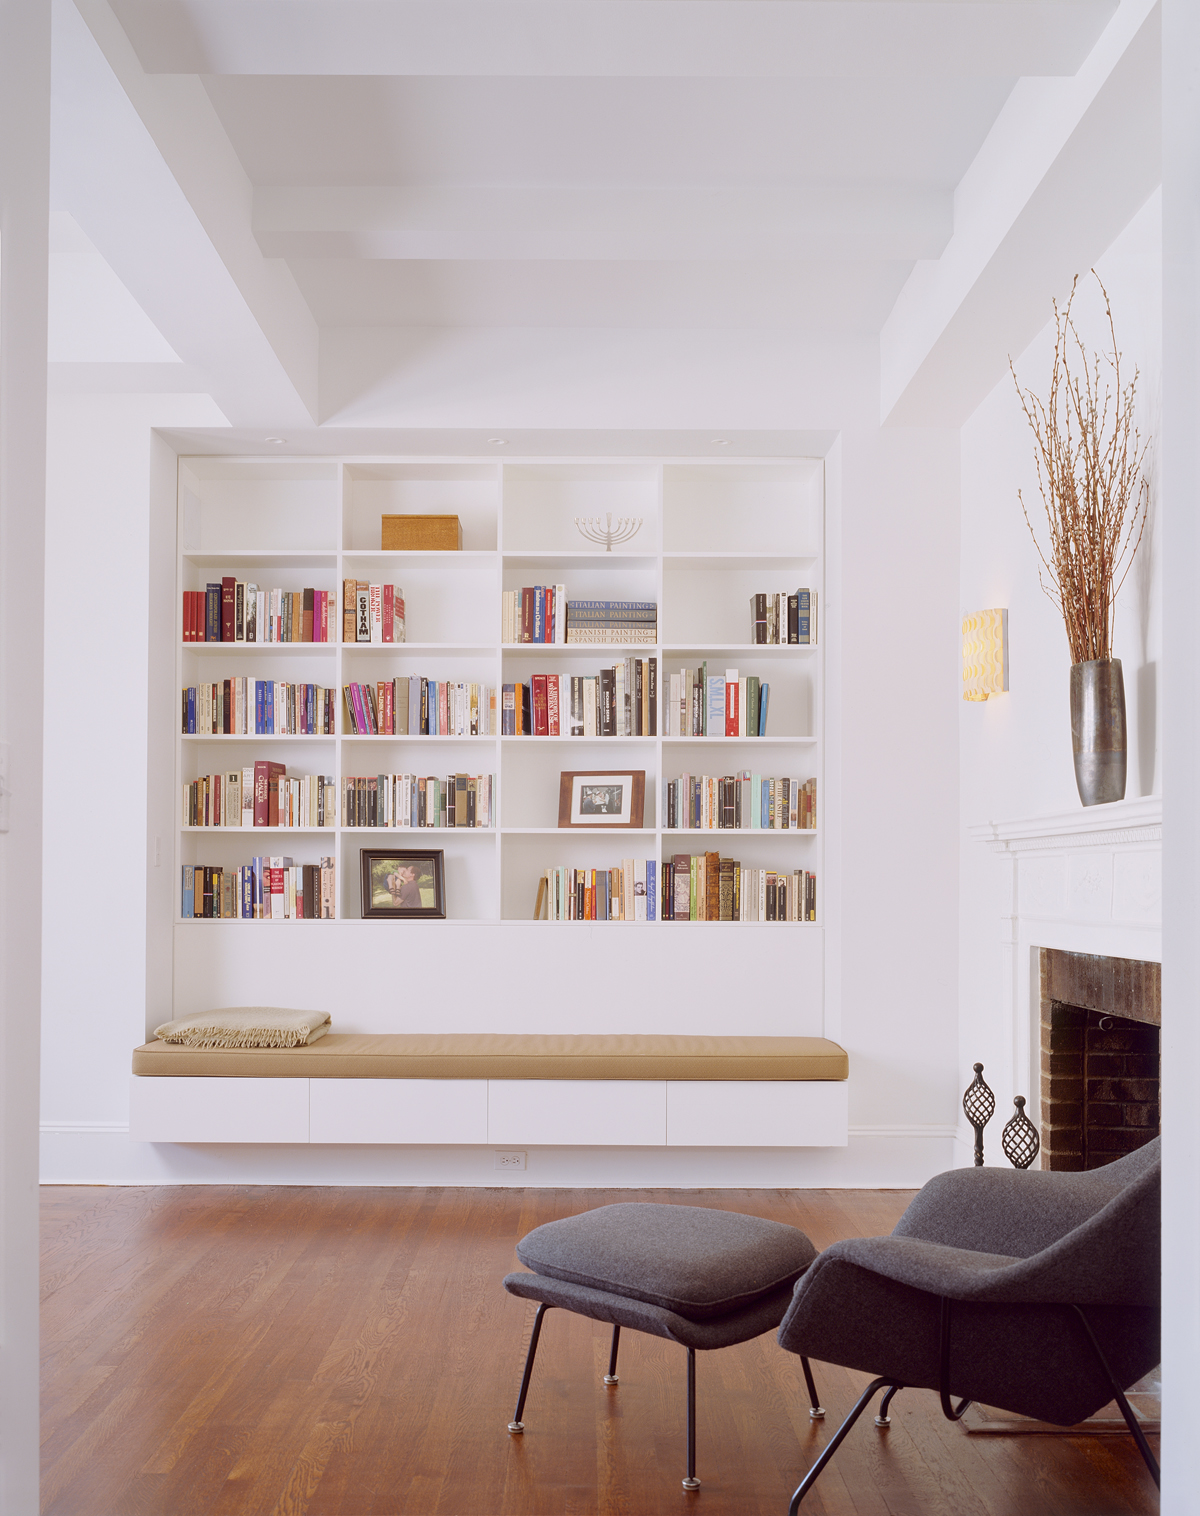 New York architects created built in book shelves